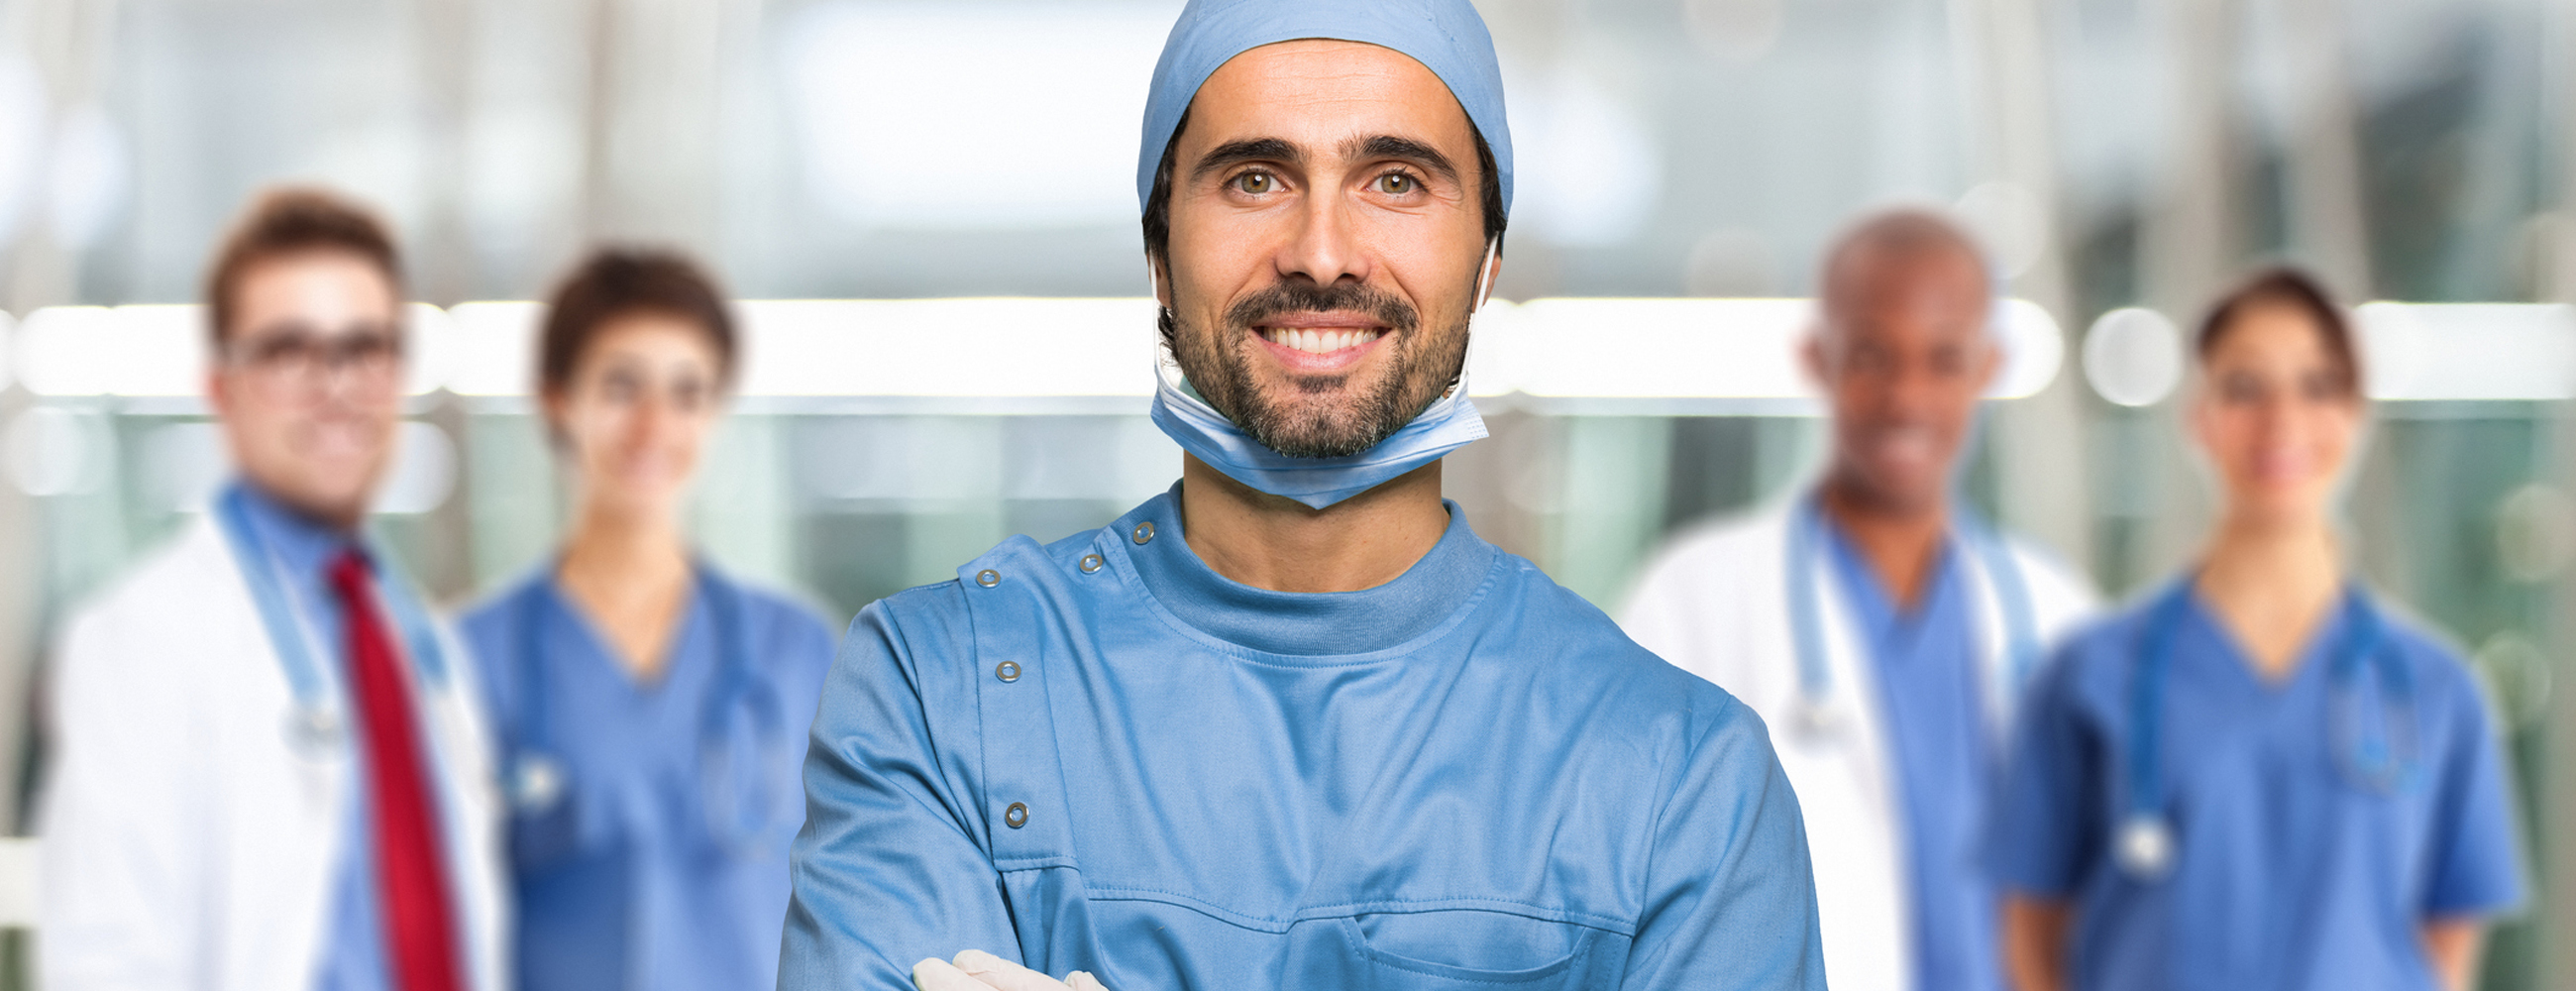 LeConte Surgical Procedures And Services